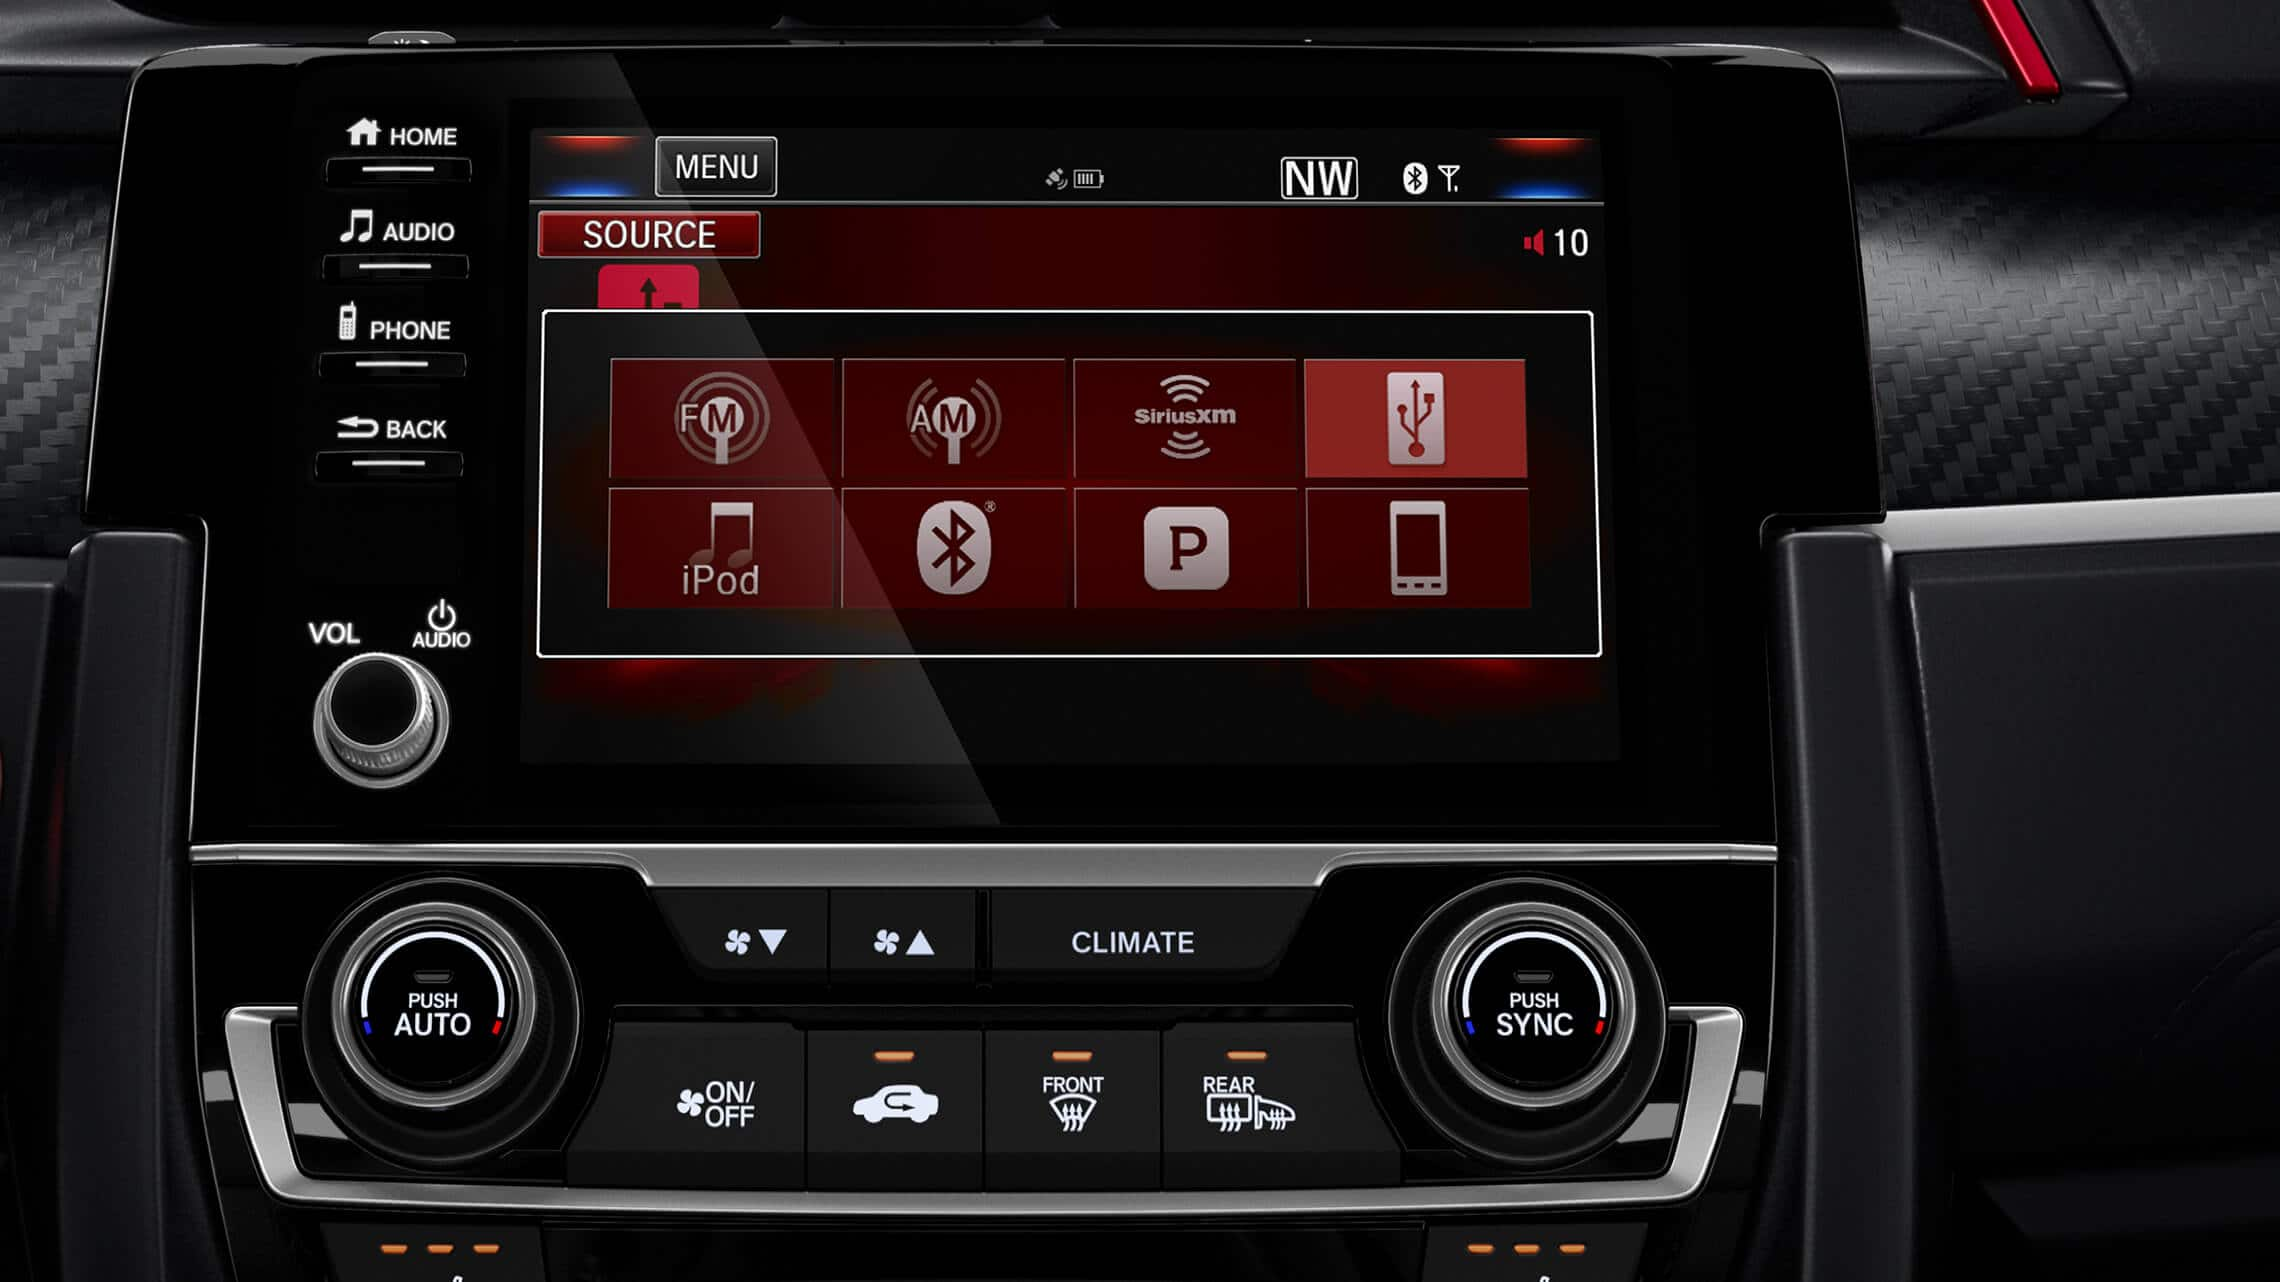 Display Audio touch-screen detail on 2020 Honda Civic Si Sedan.